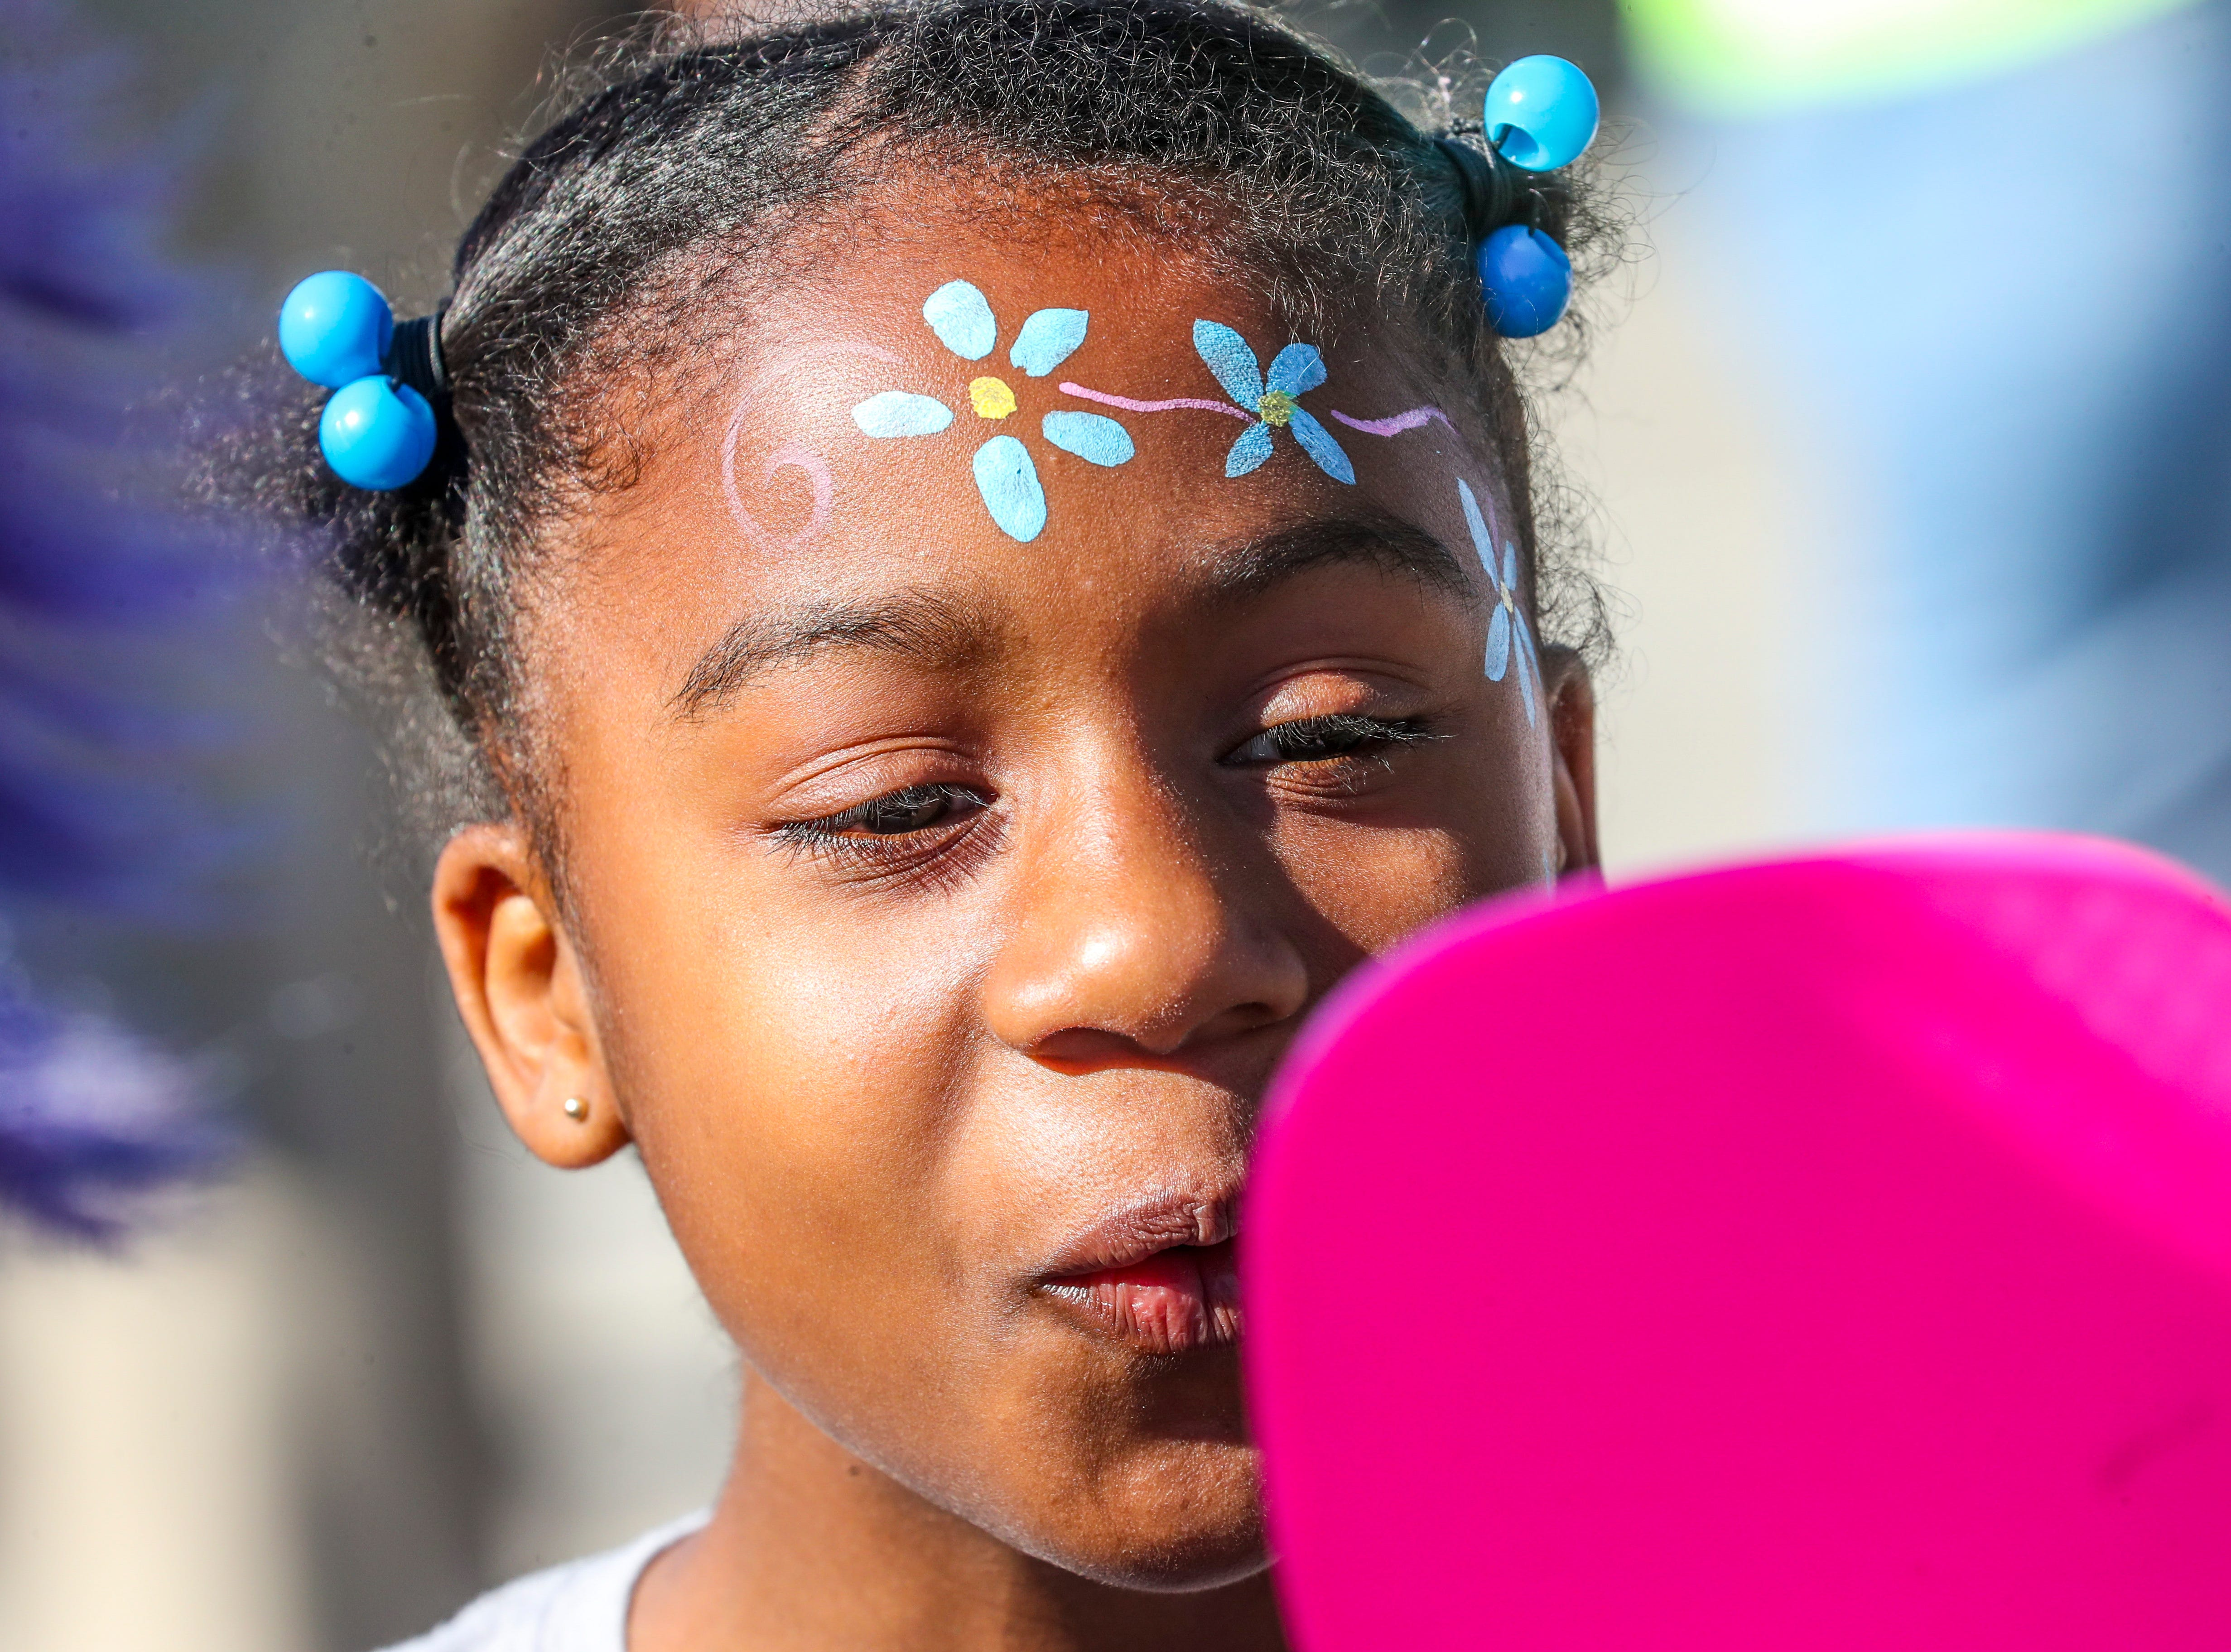 Marissa Darby 9 of Cape Coral reacts to her face paint. The 11th annual WINK Feeds Family hunger walk that supports the Harry Chapin Food Bank of Southwest Florida went off Saturday, January 19, 2019. The walk was held at Miromar Outlets in Estero, FL, and they did a 2 mile walk around the mall. The Hunger Walk raises a preliminary $212,000 for the Harry Chapin Food Bank.